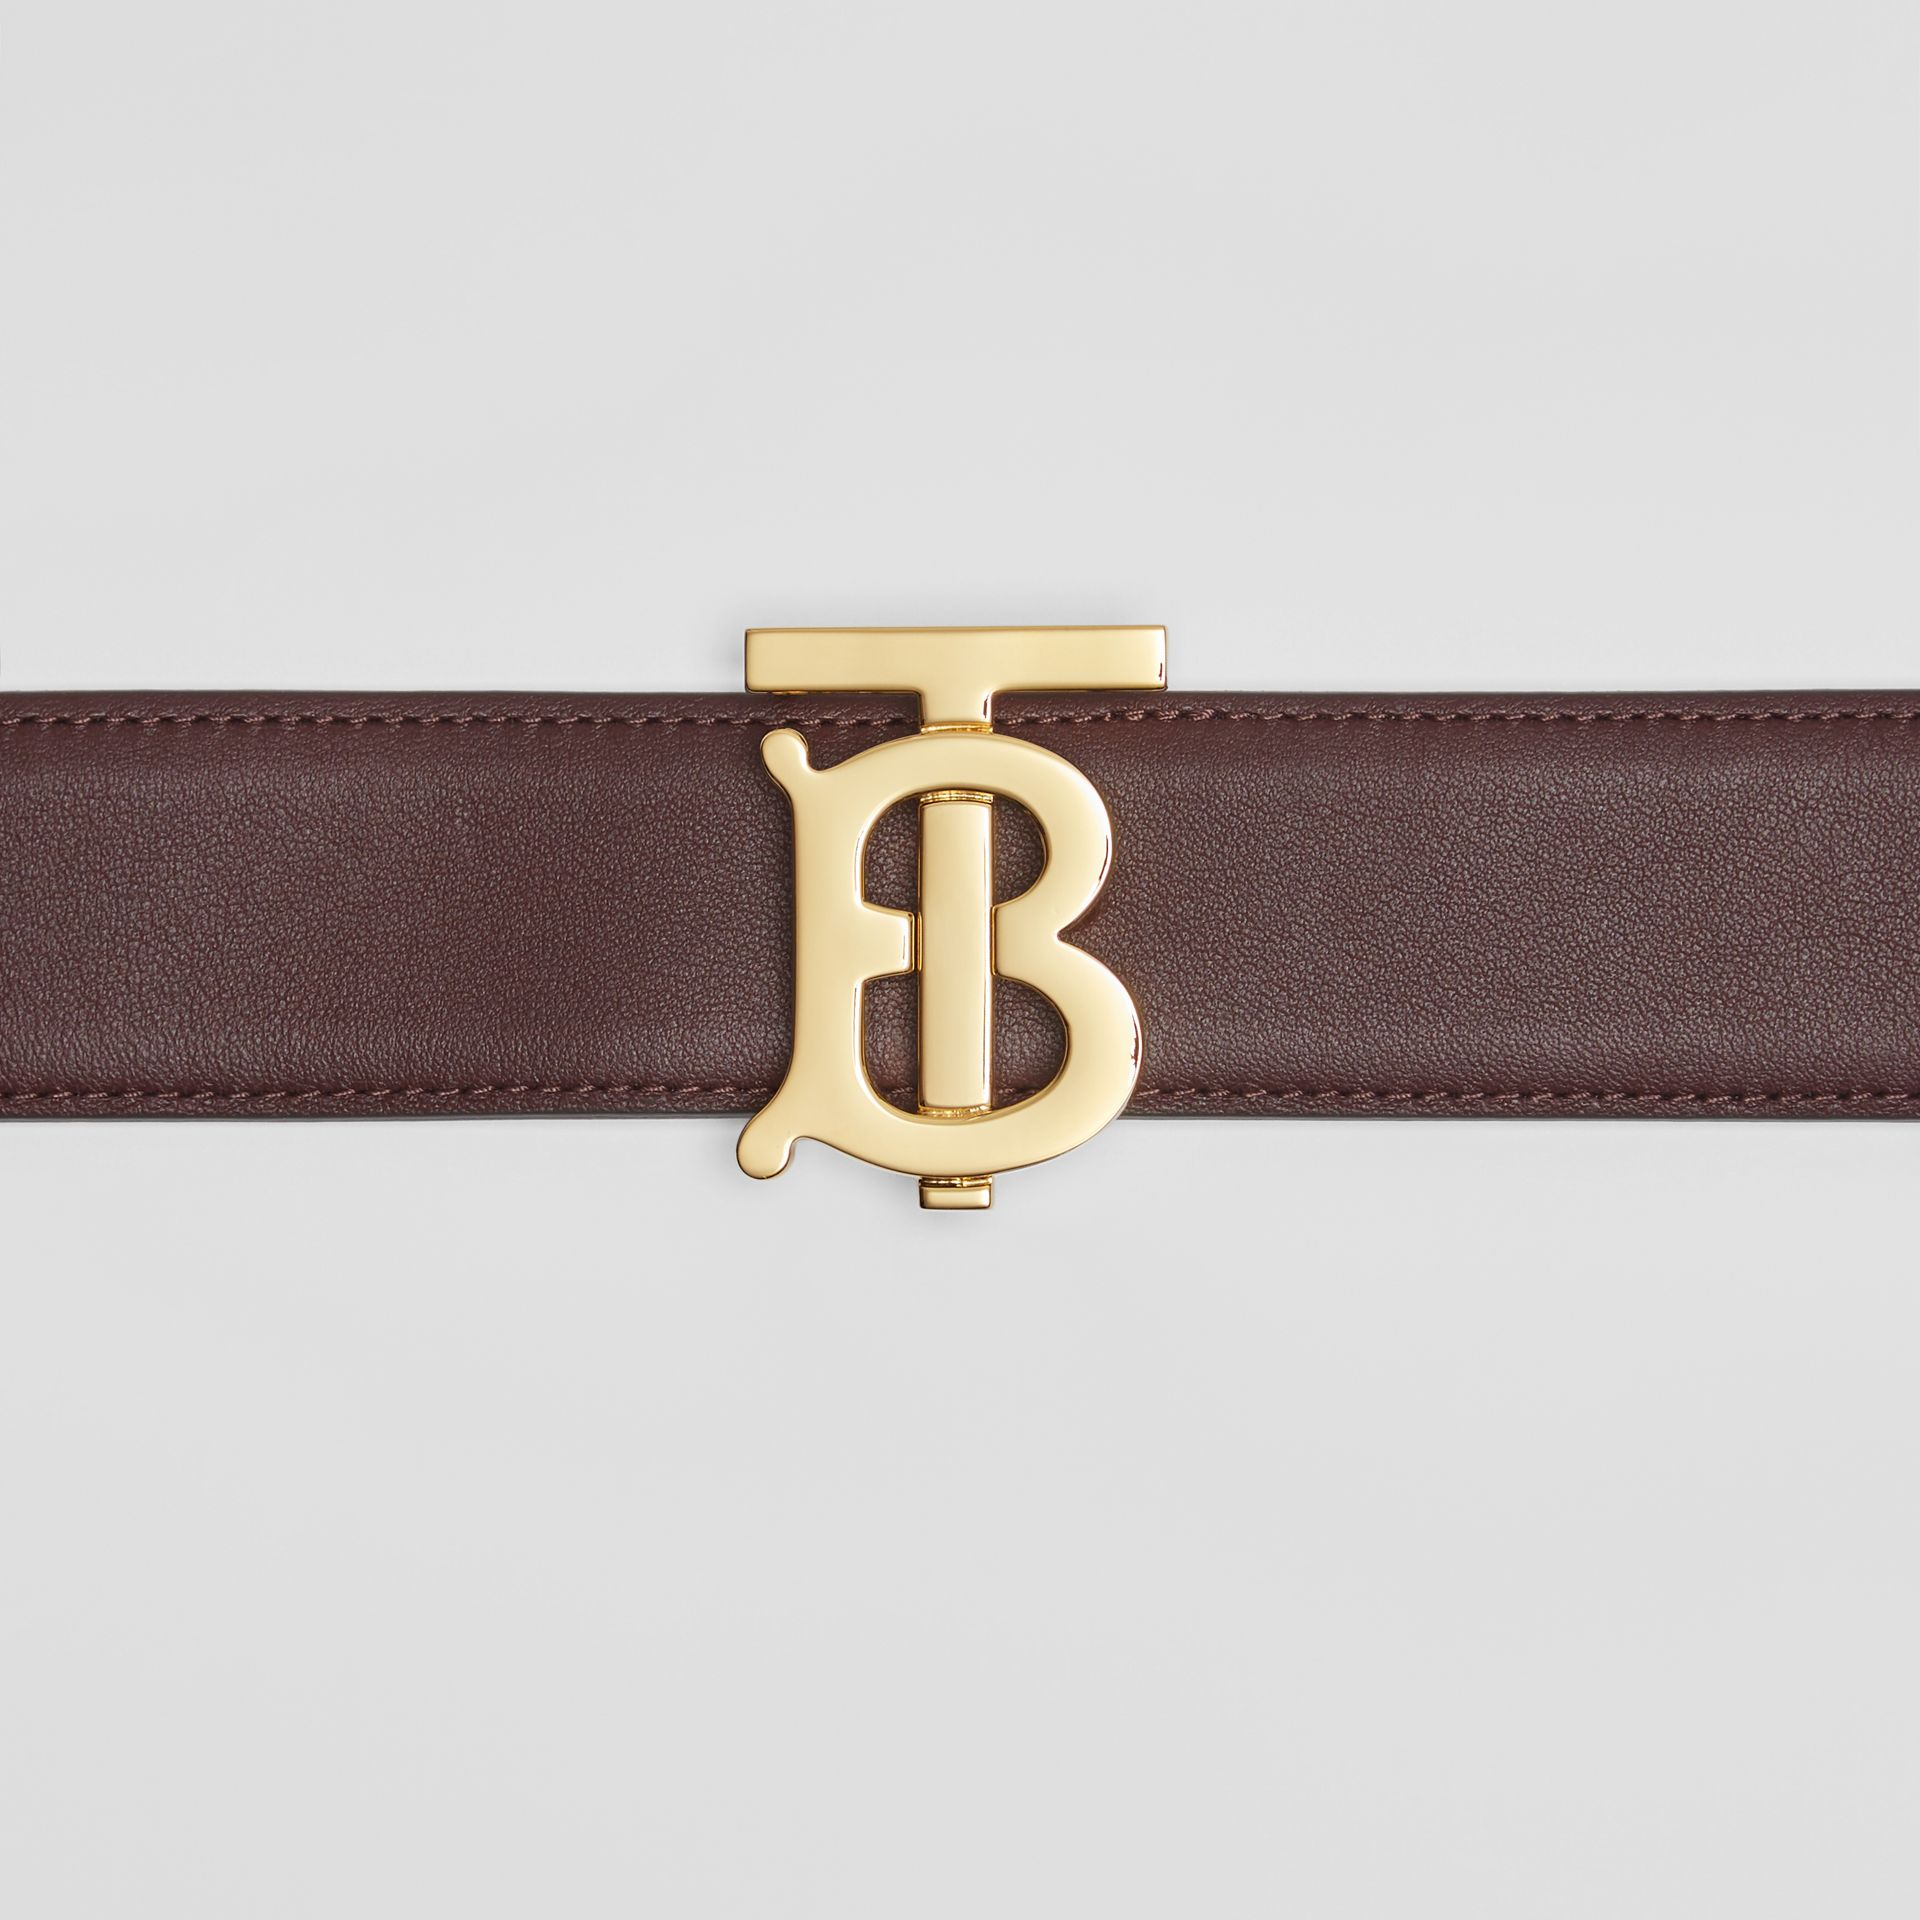 Reversible Monogram Motif Leather Belt in Oxblood/rose Beige - Women | Burberry Hong Kong - gallery image 1